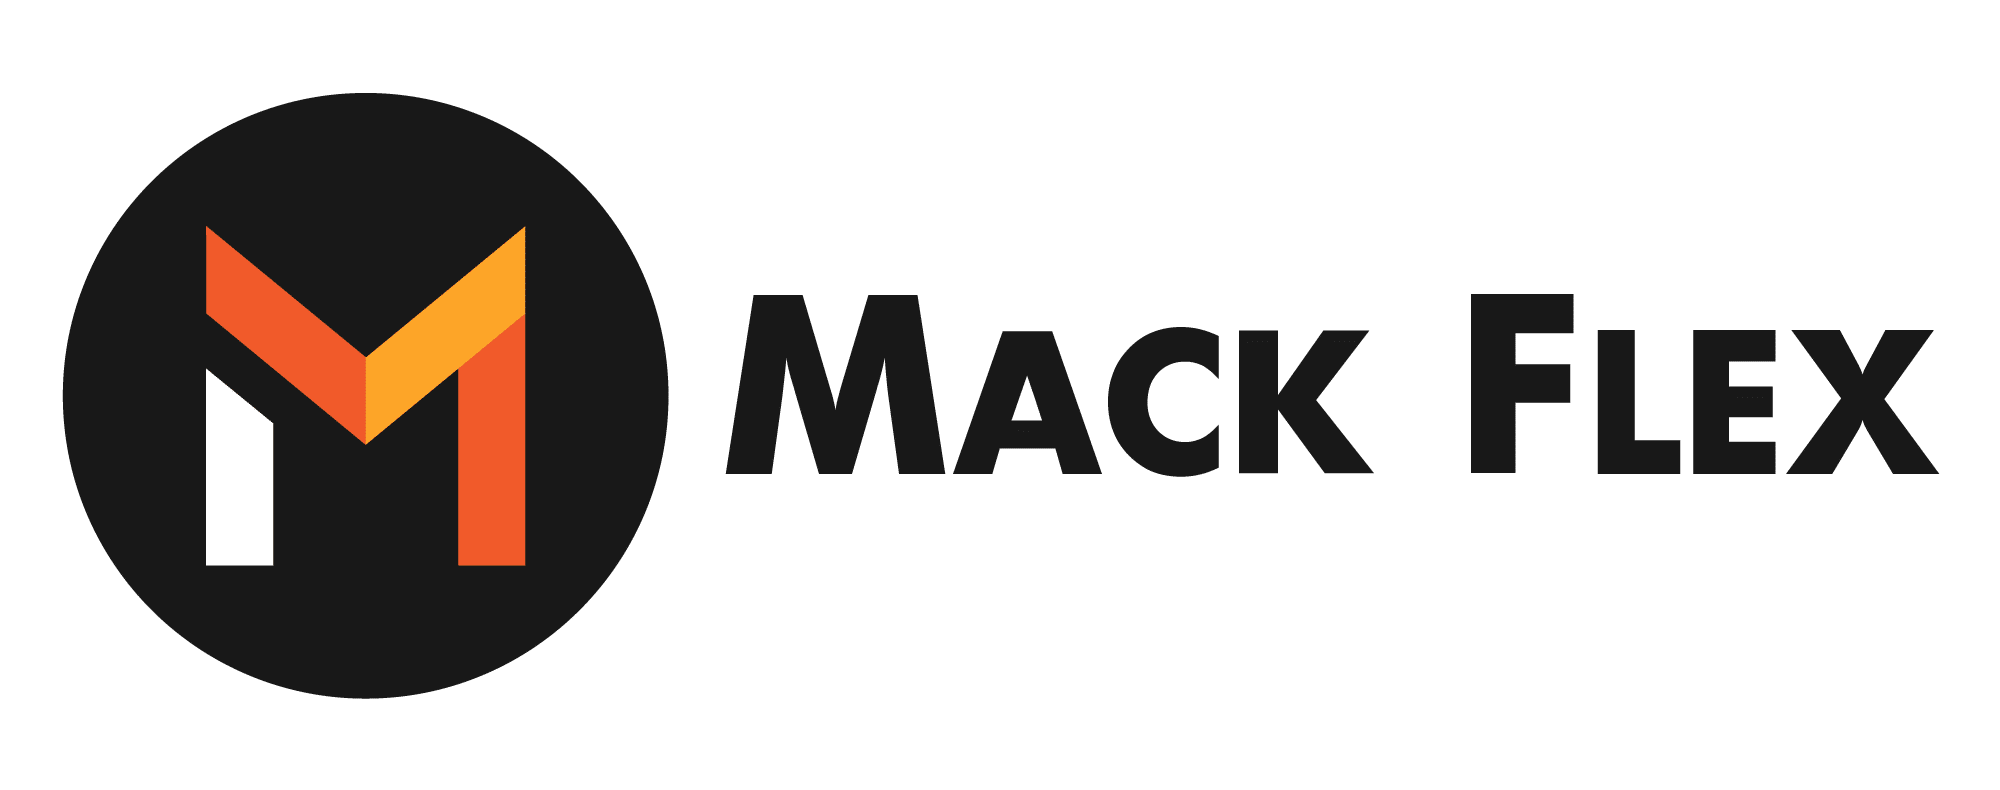 Logo-Mack-Flex